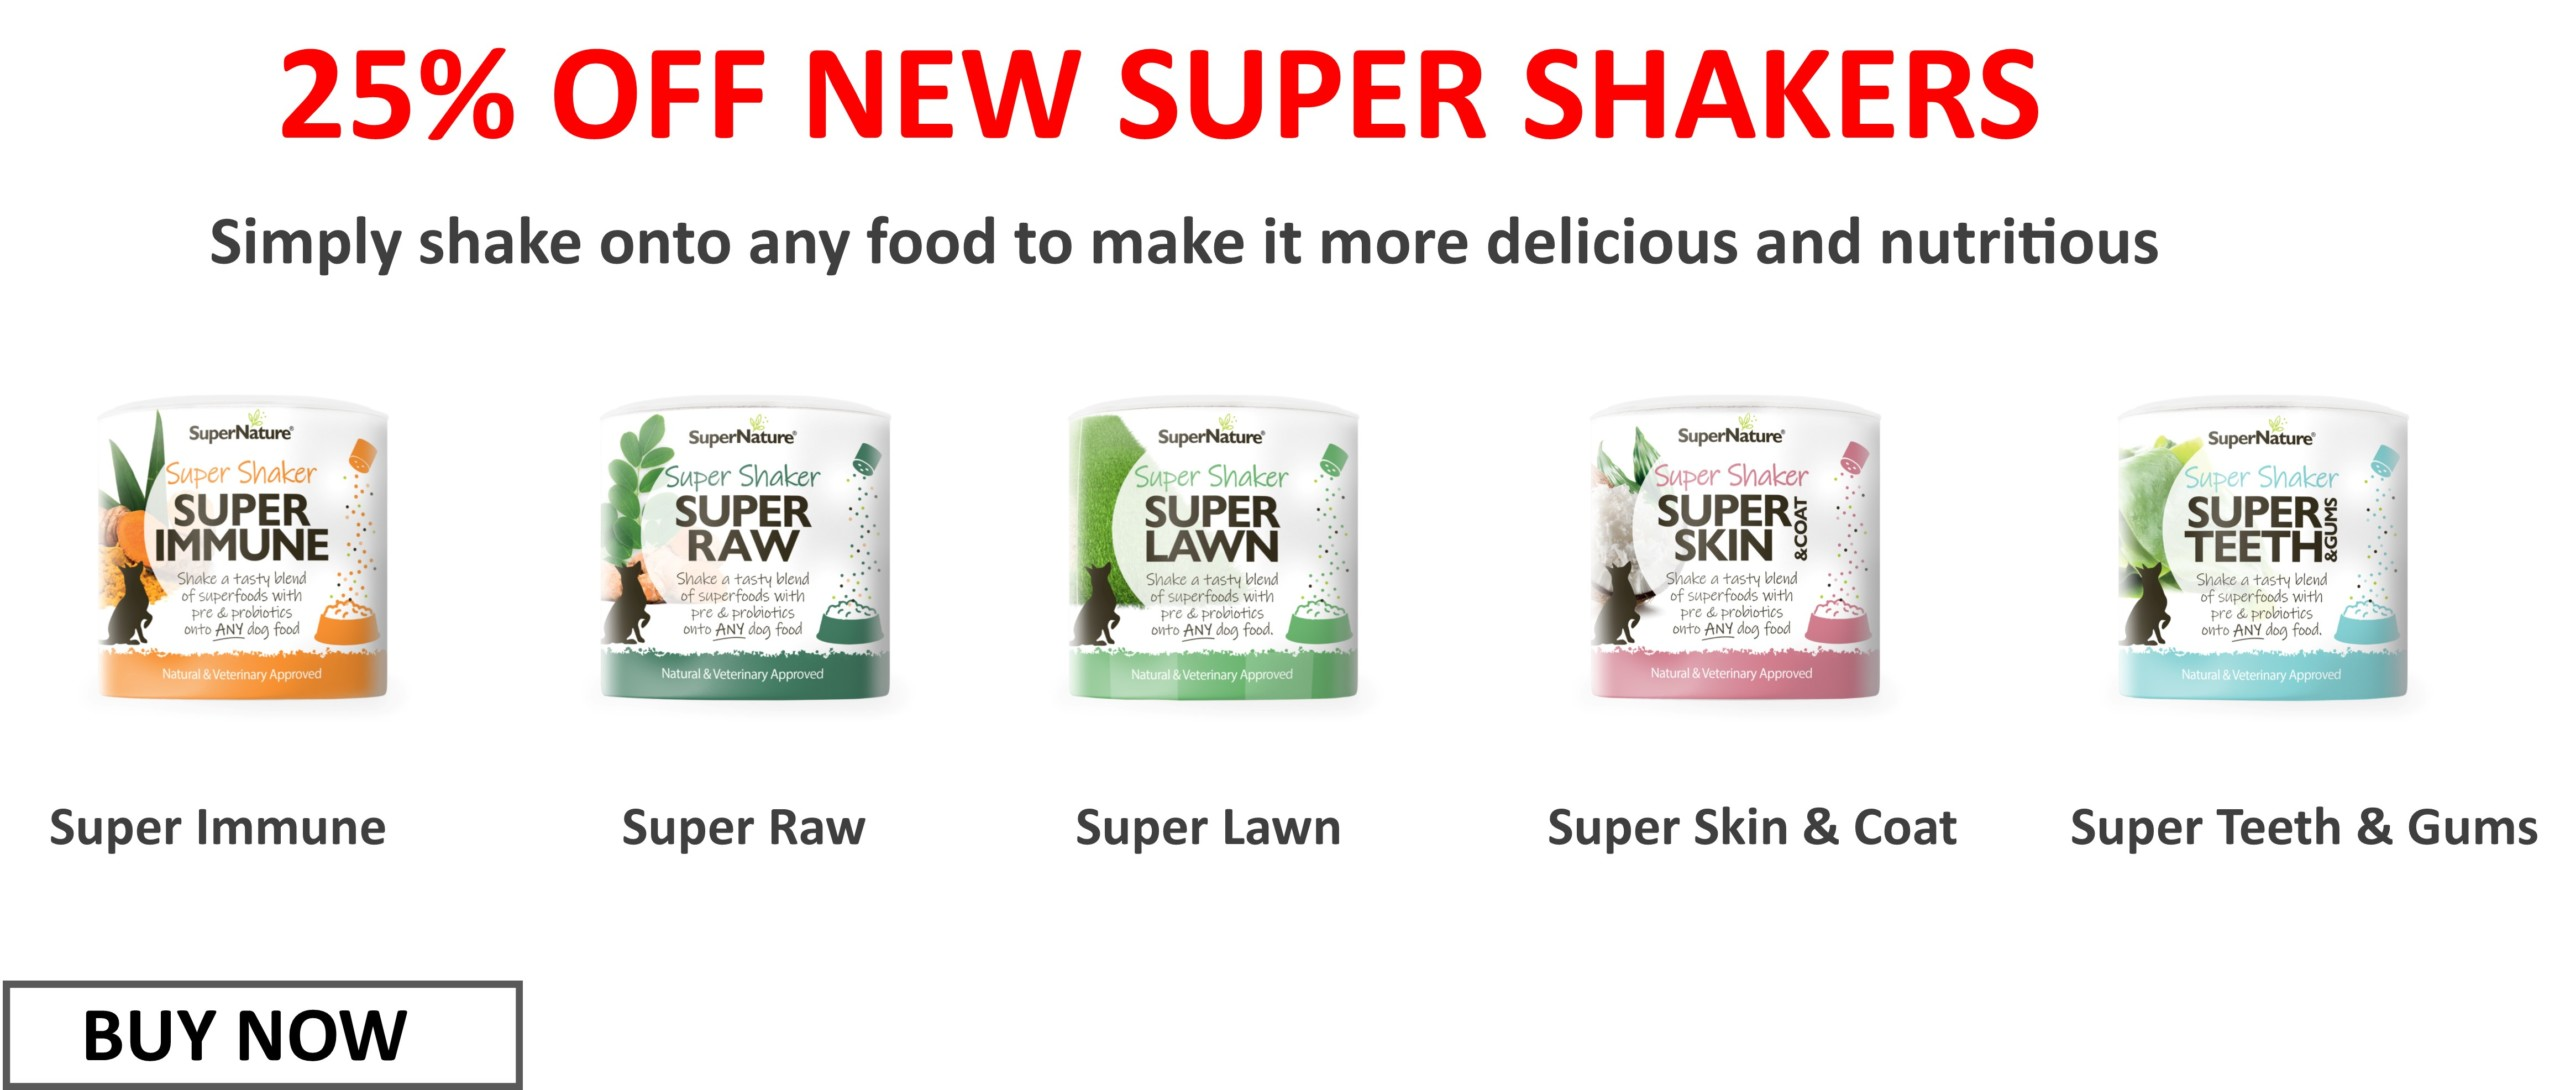 Super Shakers offer